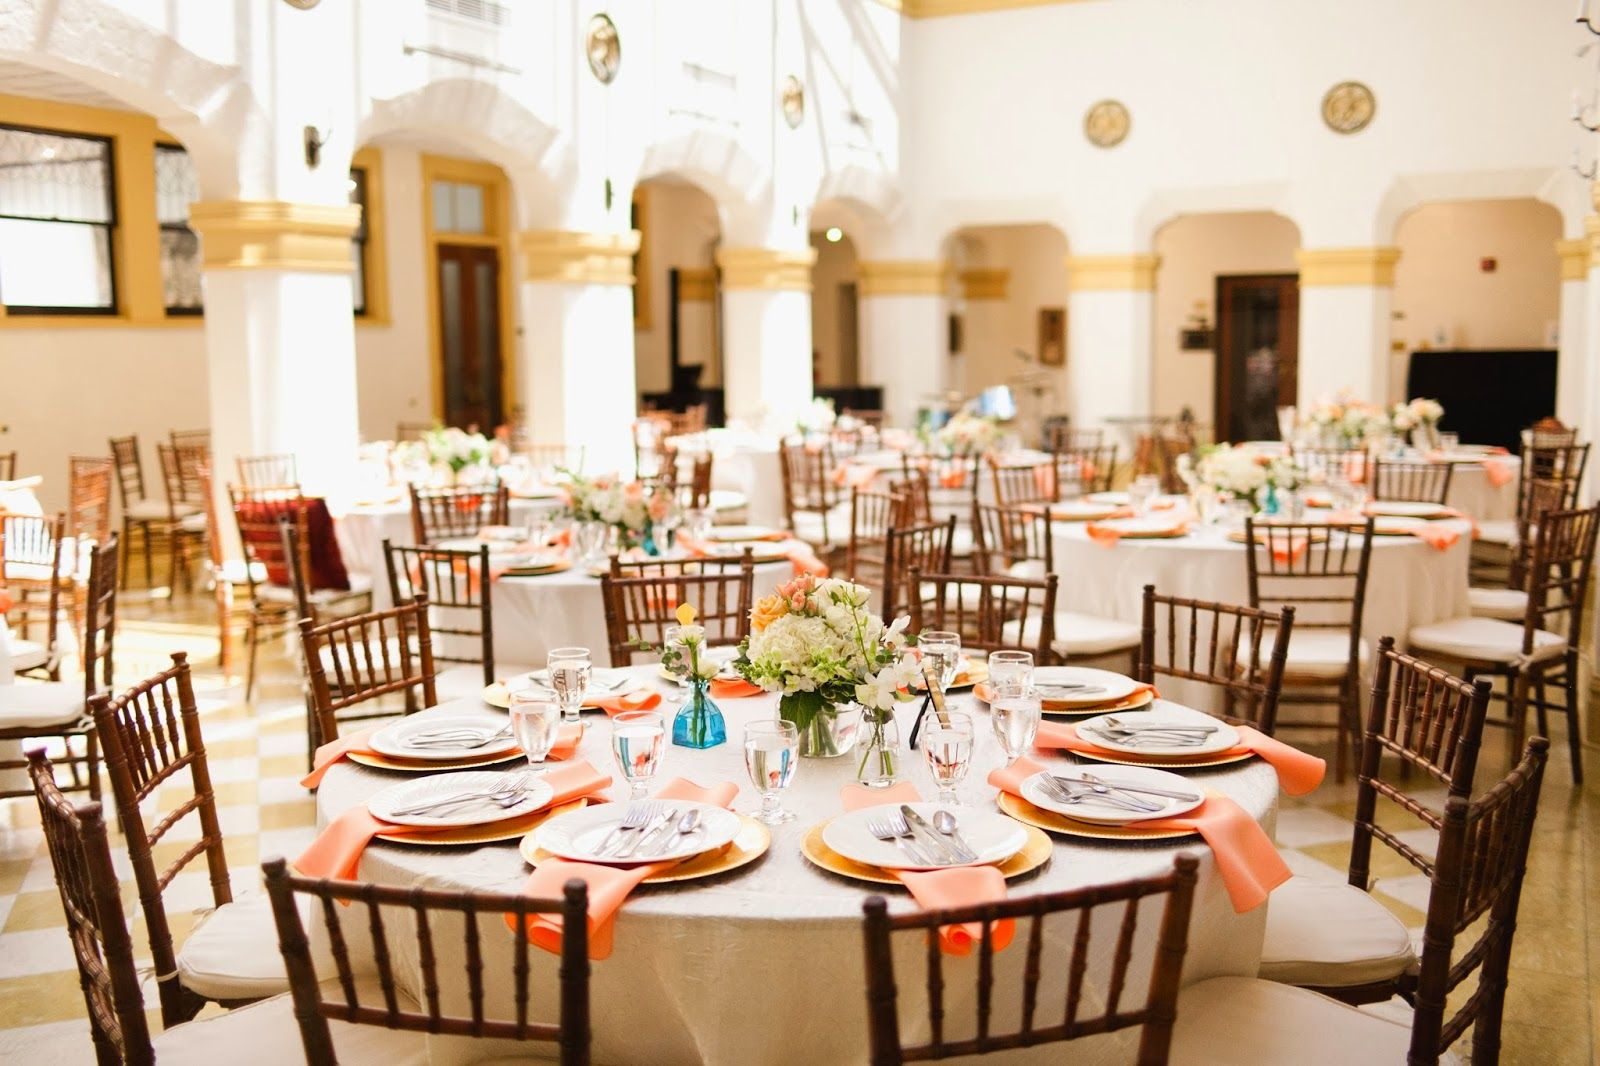 The Thomas Center In Gainesville Fl Ben Sasso Photography Wedding Venues Real Weddings Venues